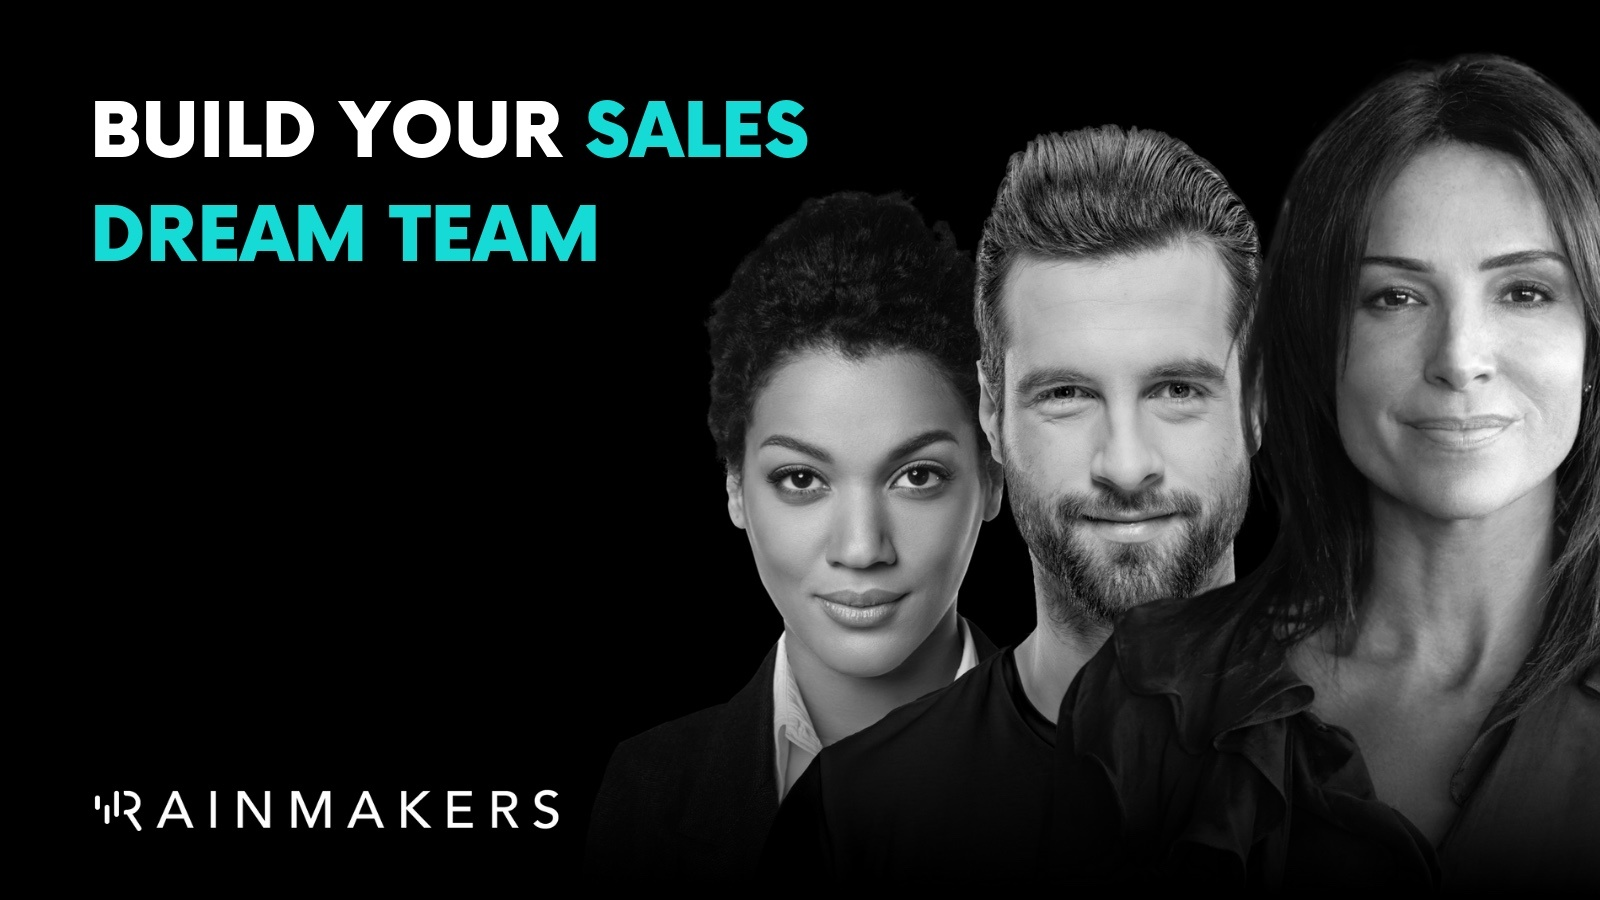 Build your sales dream team with Rainmakers.